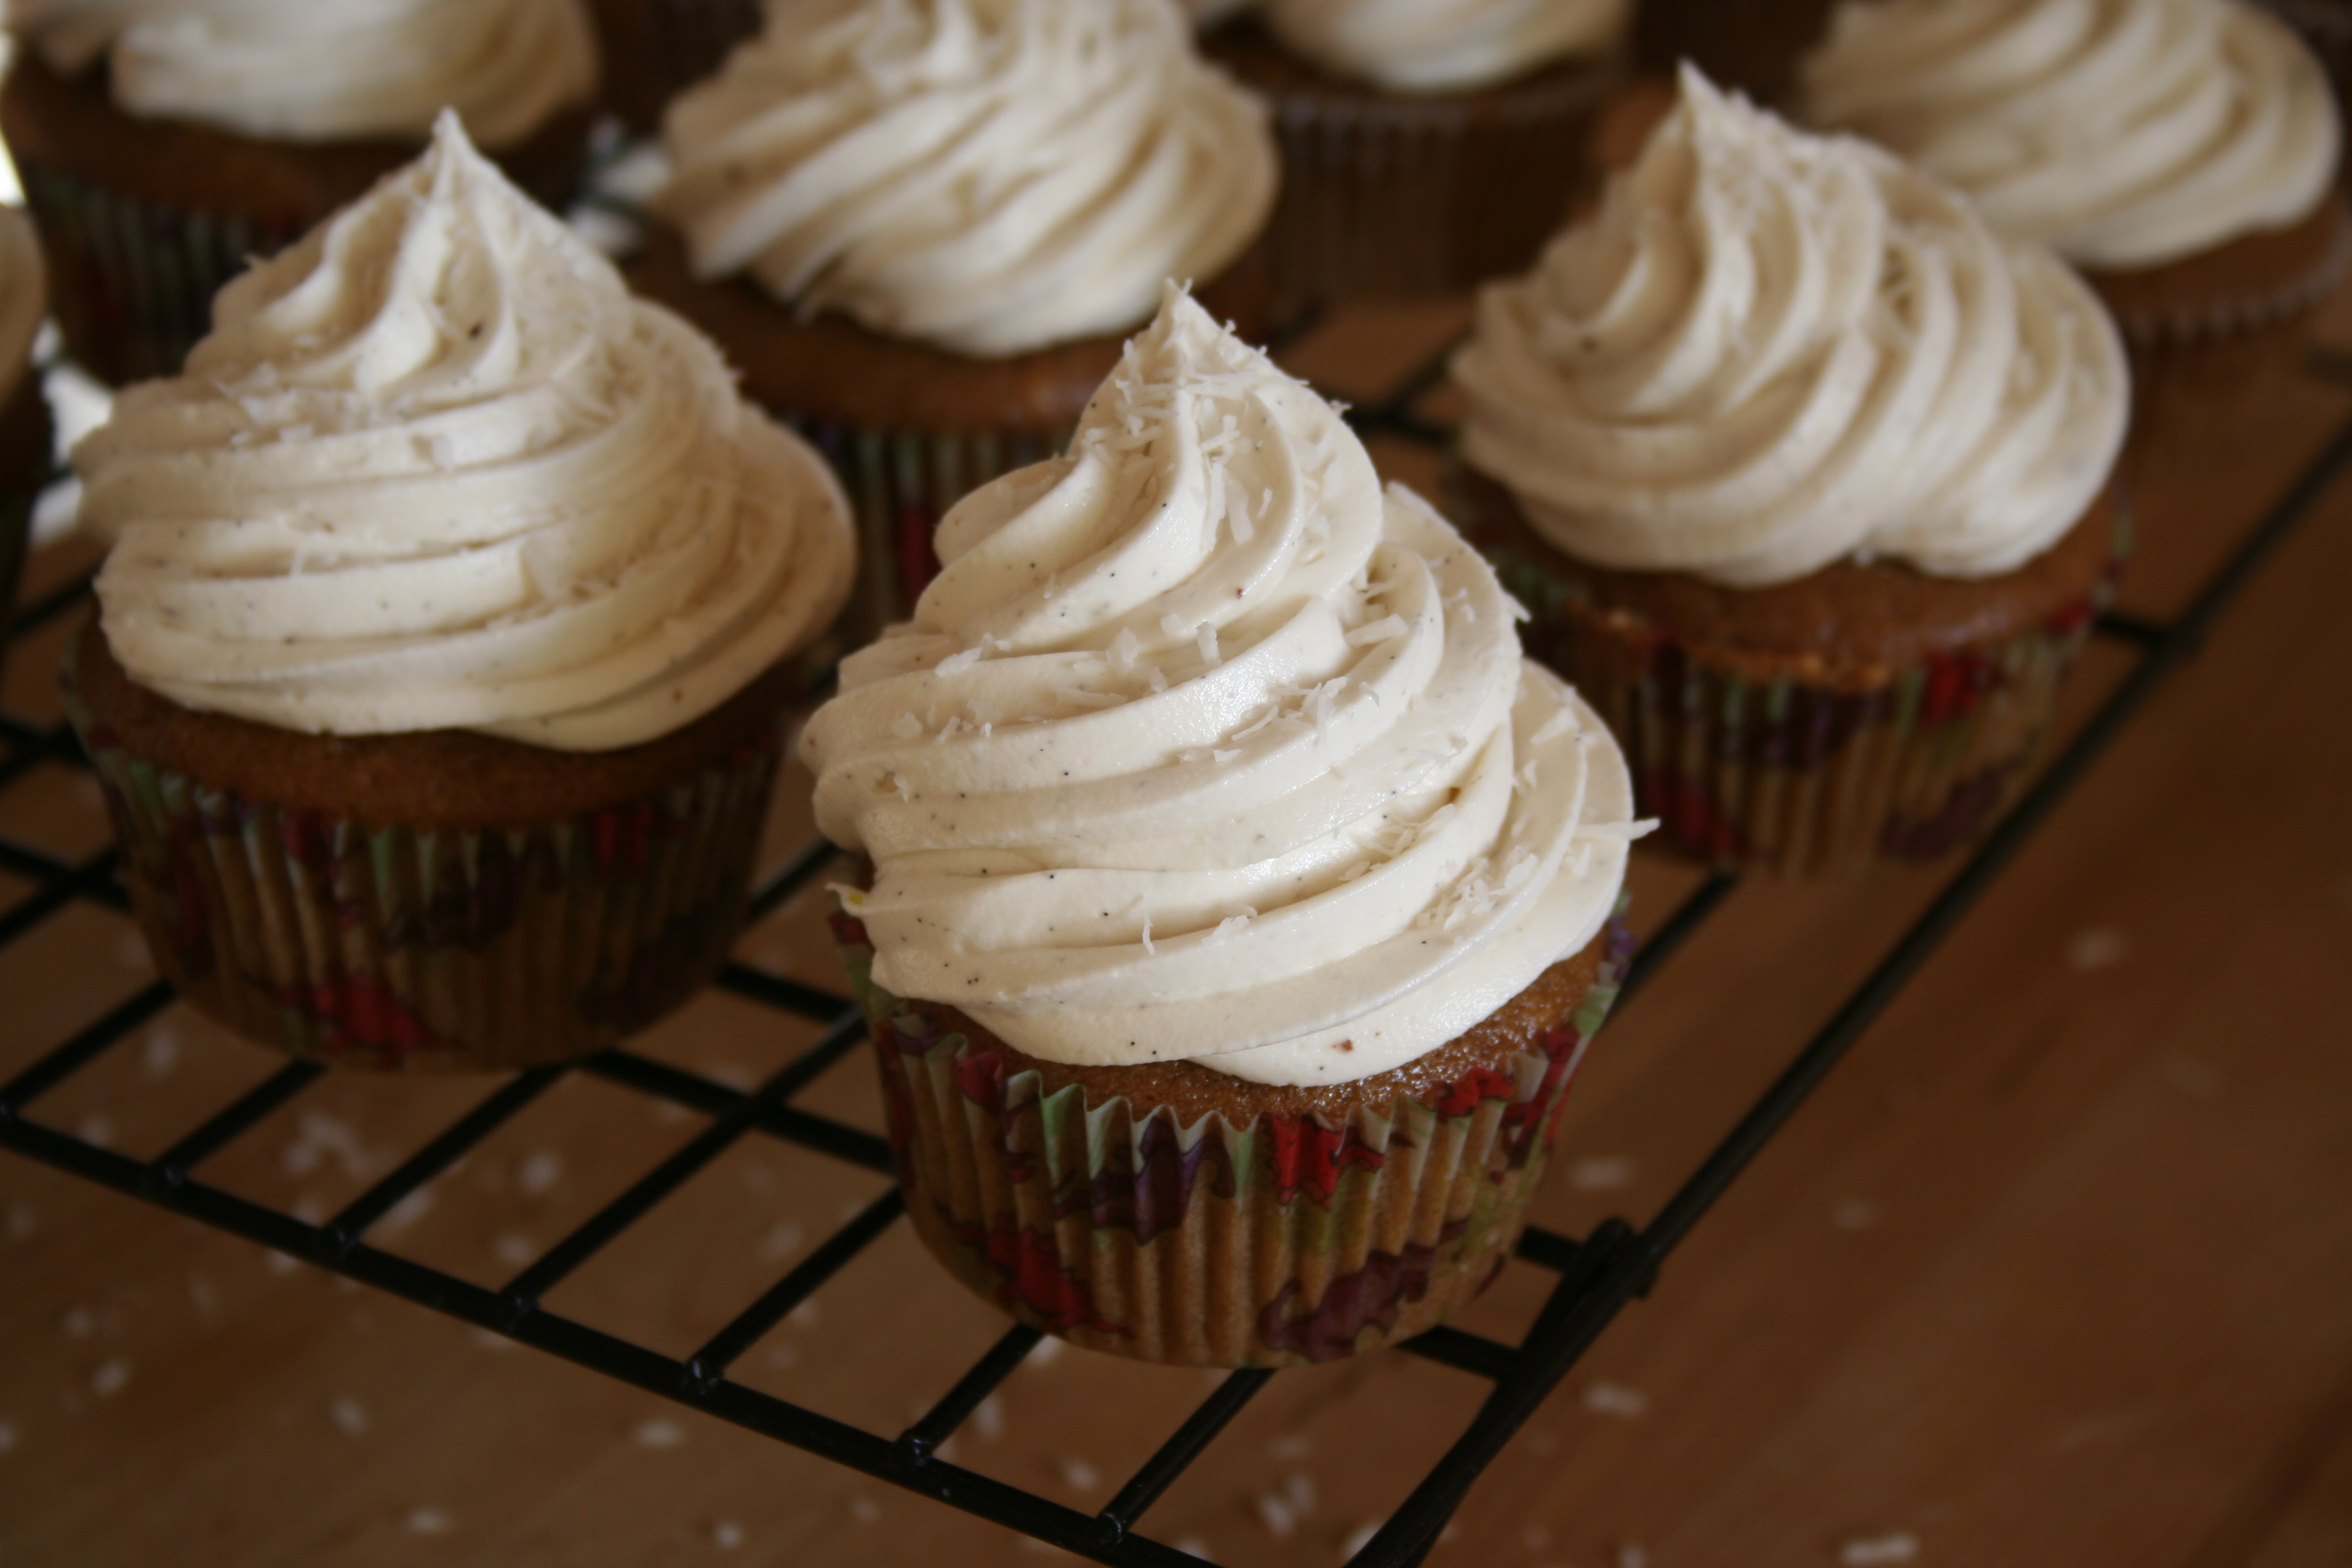 White Chocolate Vanilla Bean Frosting Ingredients: